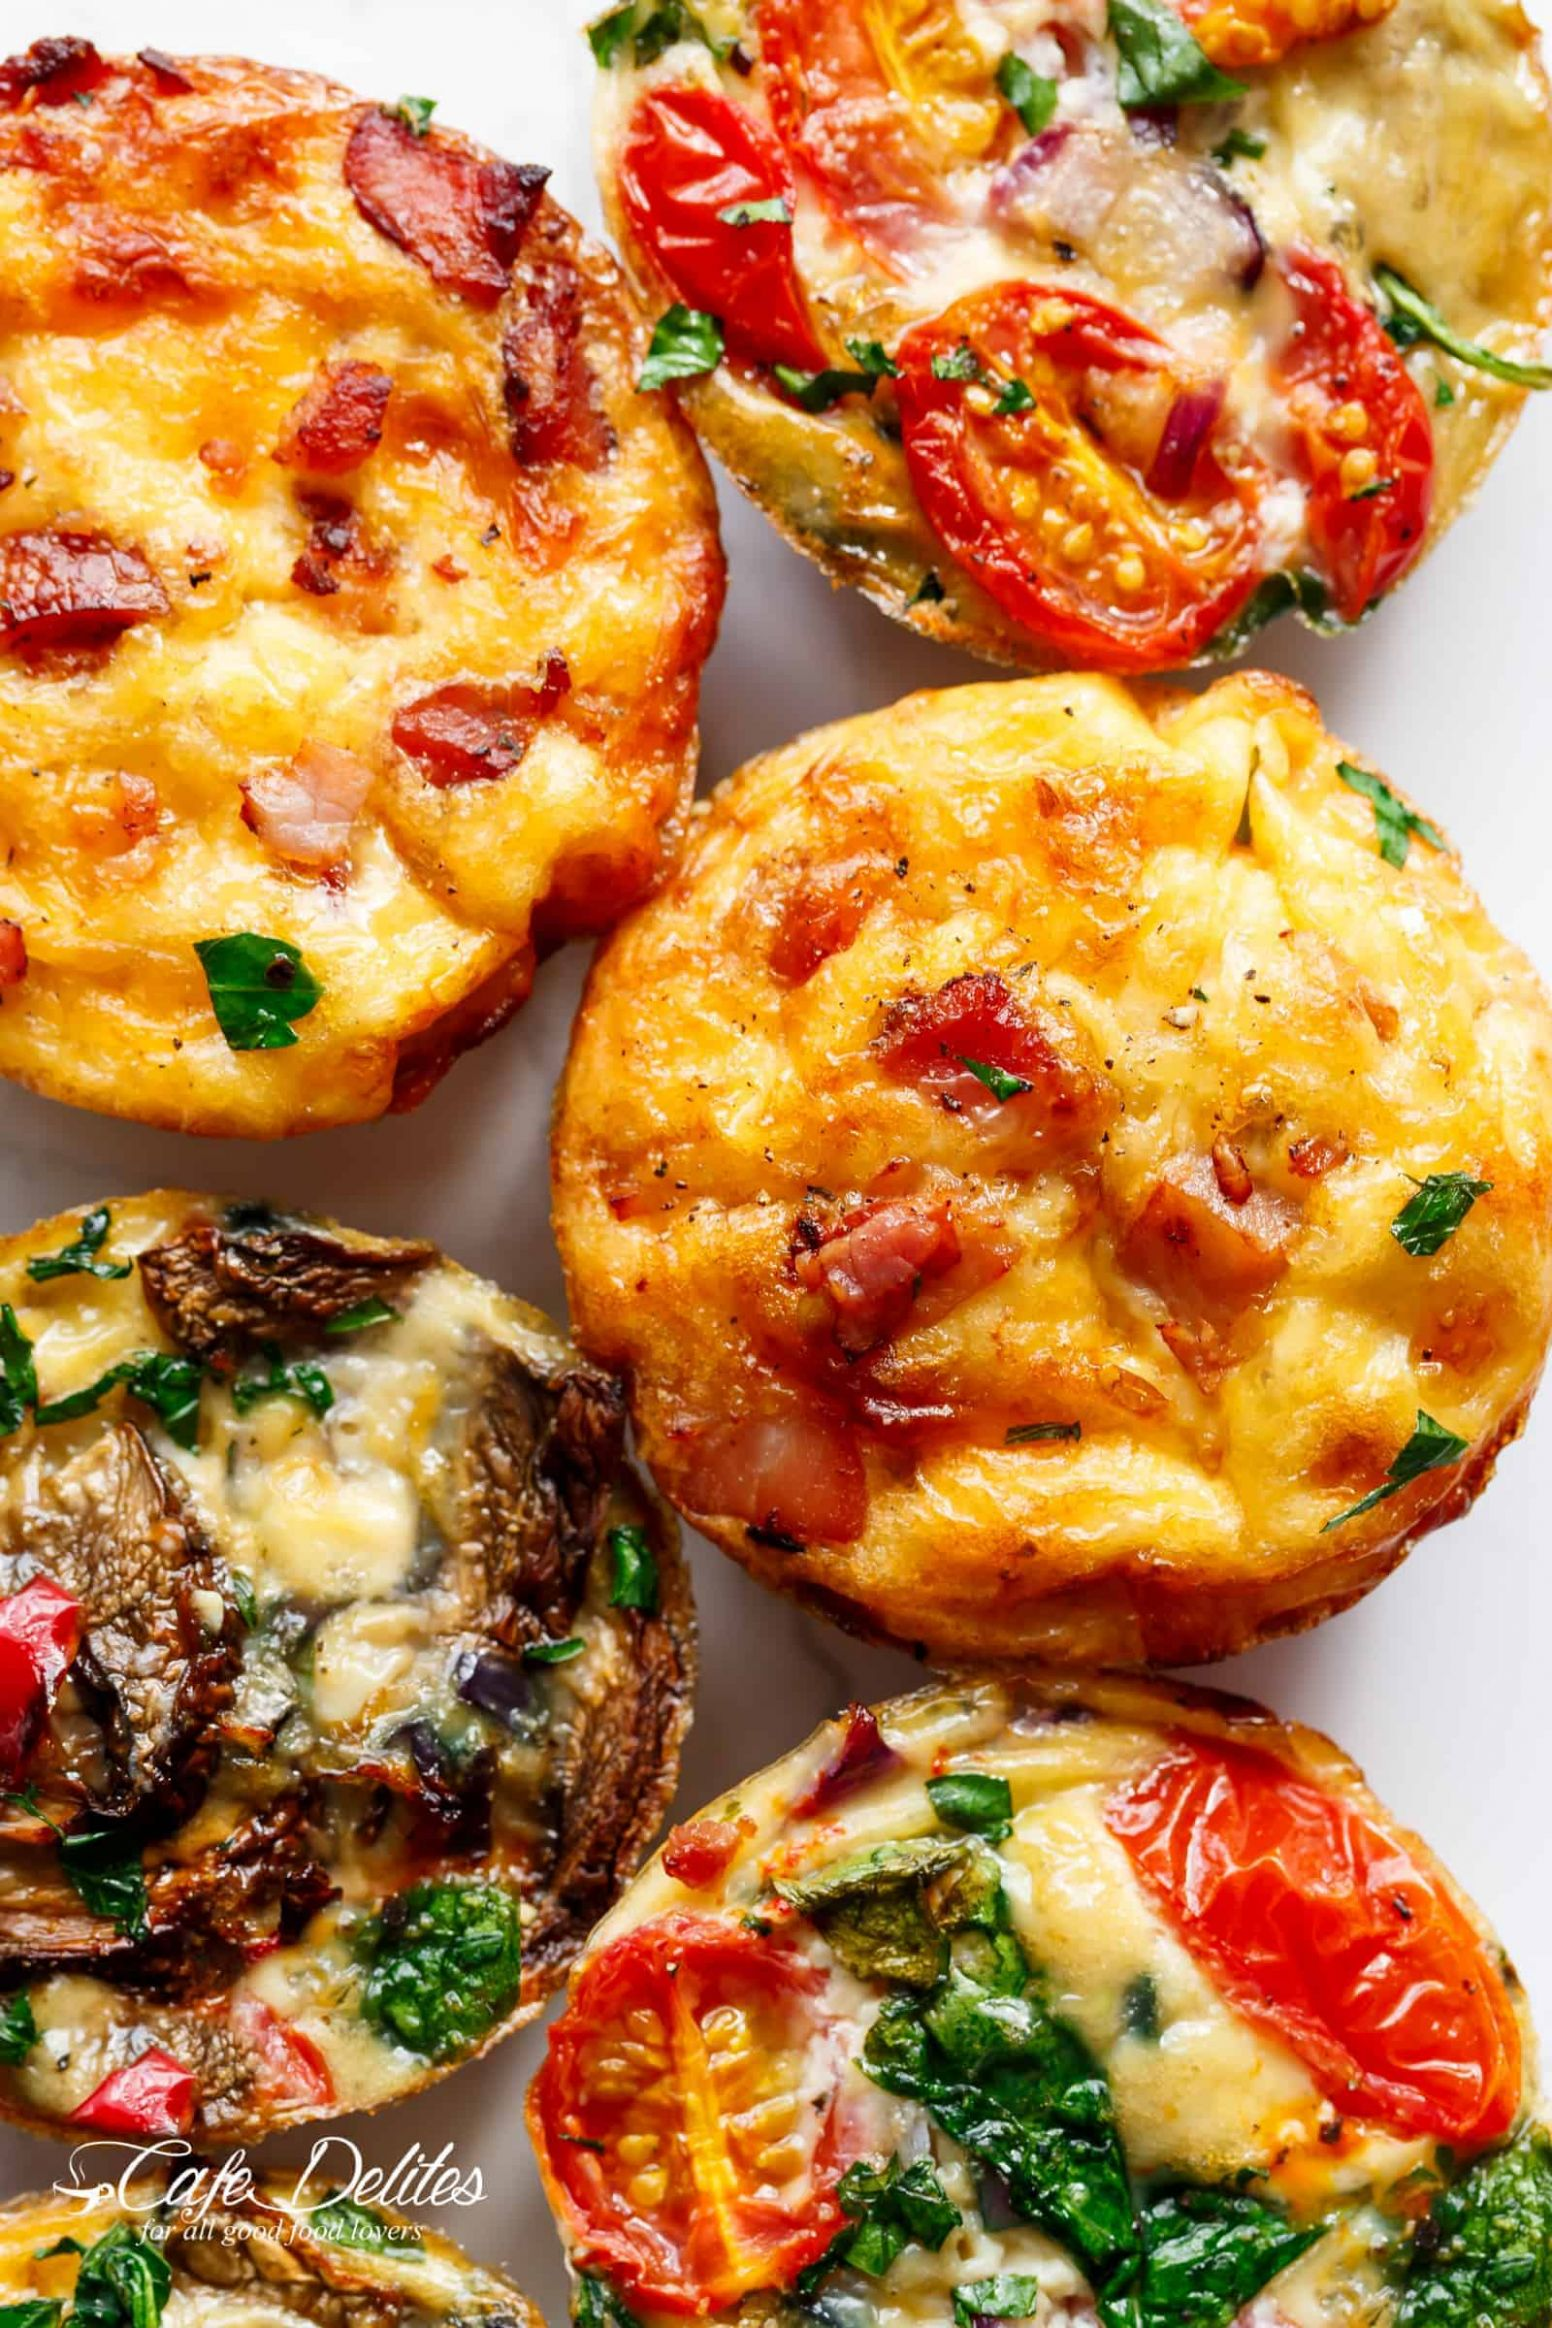 Breakfast Egg Muffins 12 Ways - Recipes Egg Muffin Cups